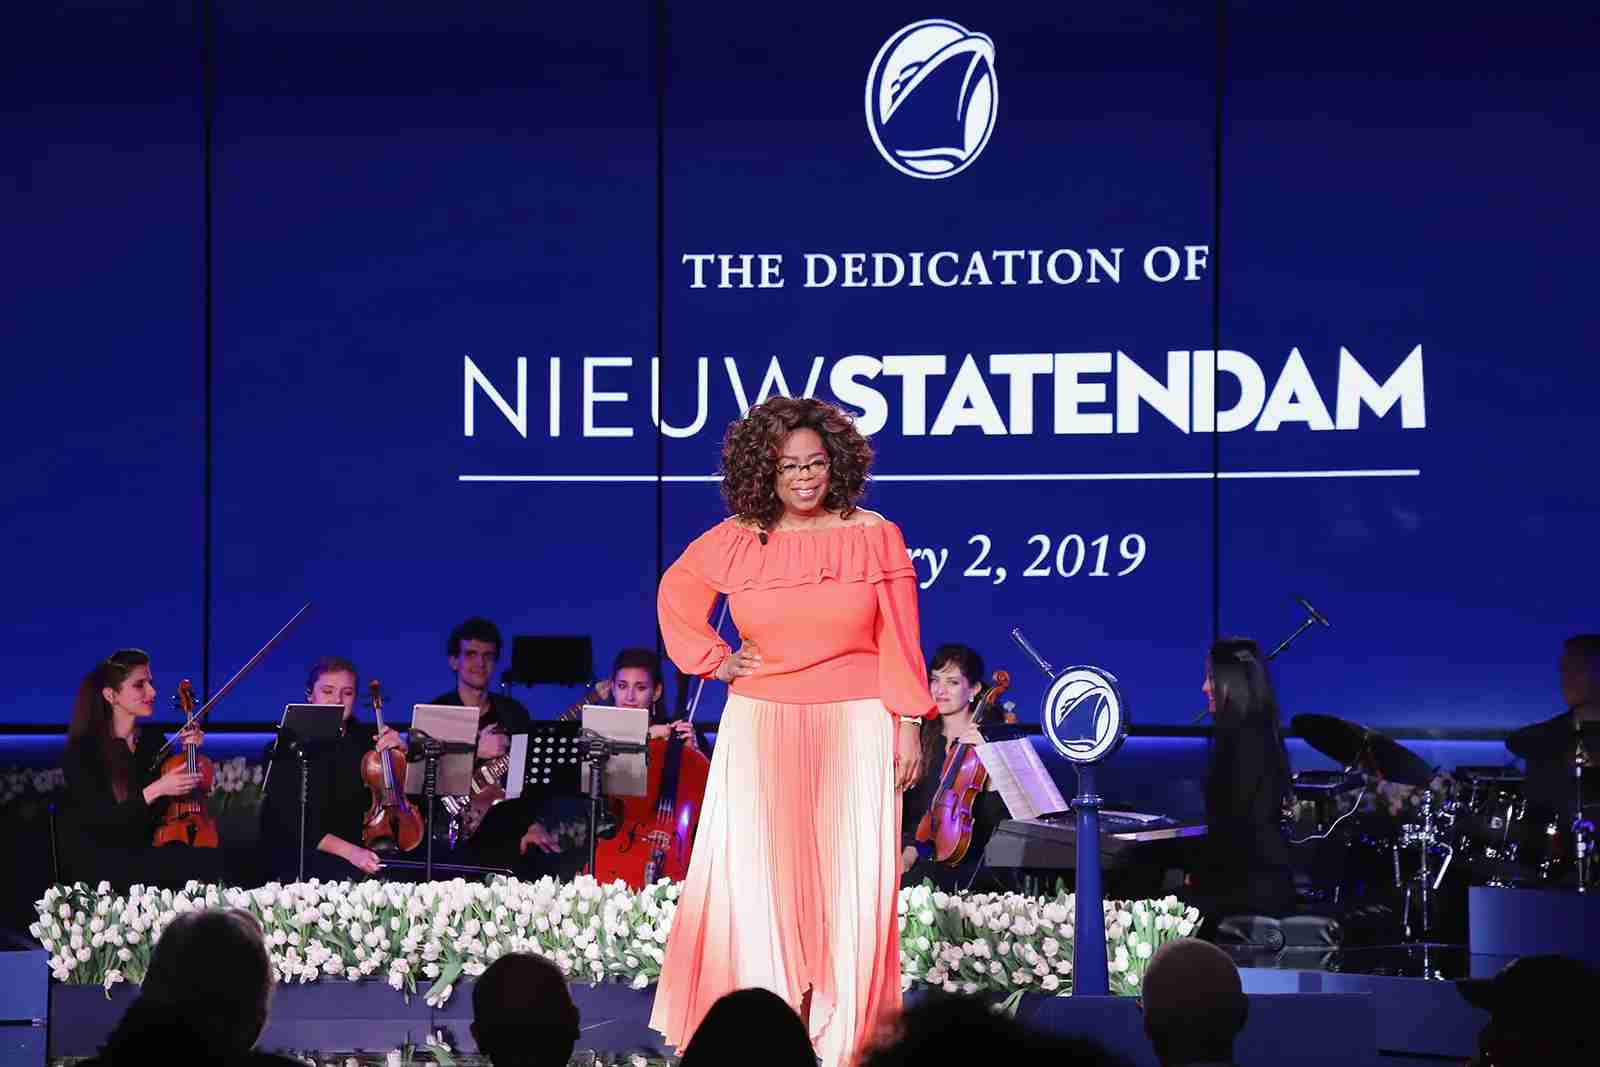 FORT LAUDERDALE, FL - FEBRUARY 02:  Godmother Oprah Winfrey speaks onstage during the Holland America Line and Nieuw Statendam Dedication with Godmother Oprah Winfrey at Port Everglades on February 2, 2019 in Fort Lauderdale, Florida.  (Photo by John Parra/Getty Images for Holland America)